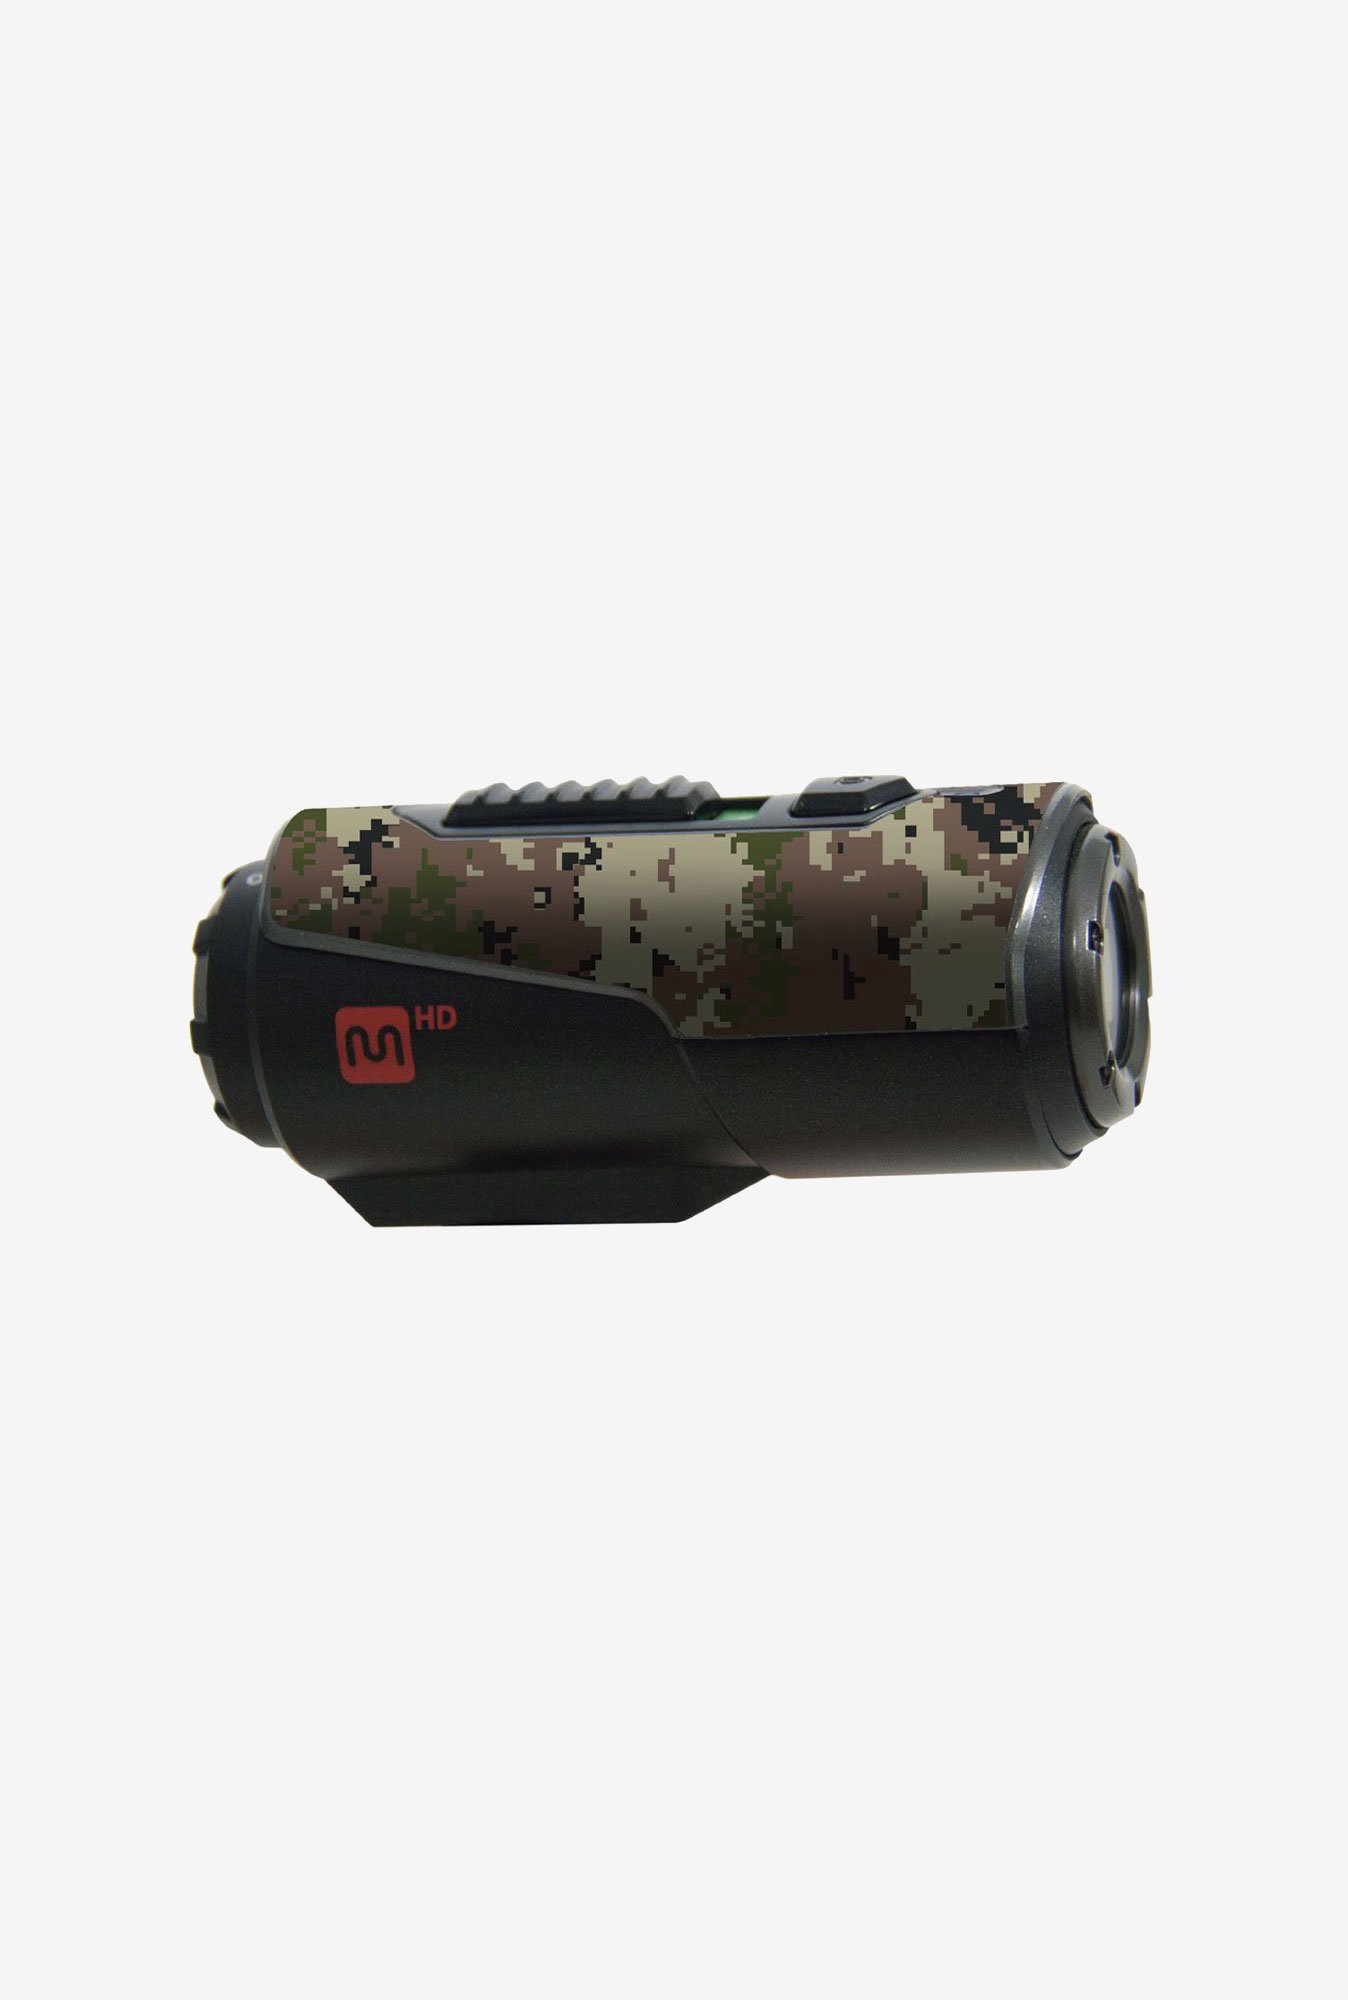 Monoprice 110524 Mhd Action Camera Skin 3 Pack (Camo)